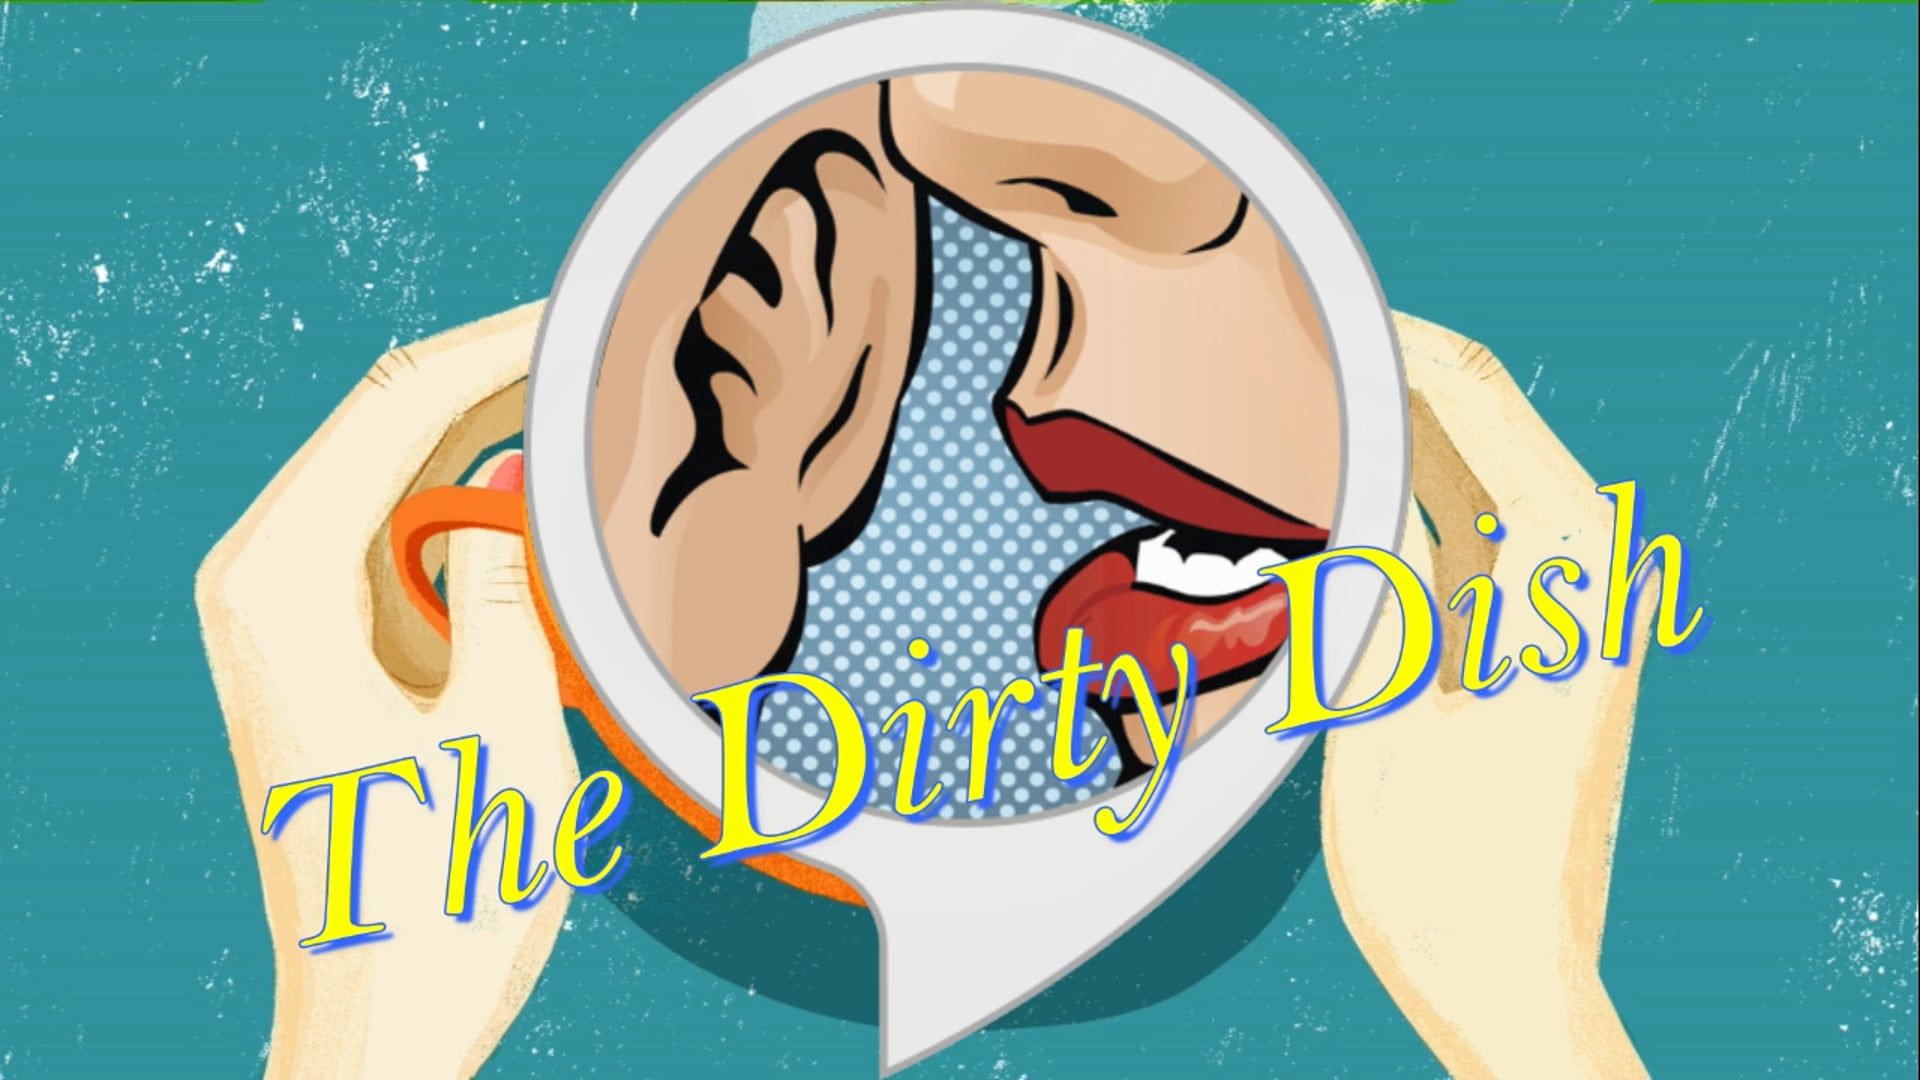 The Dirty Dish - Episode 1